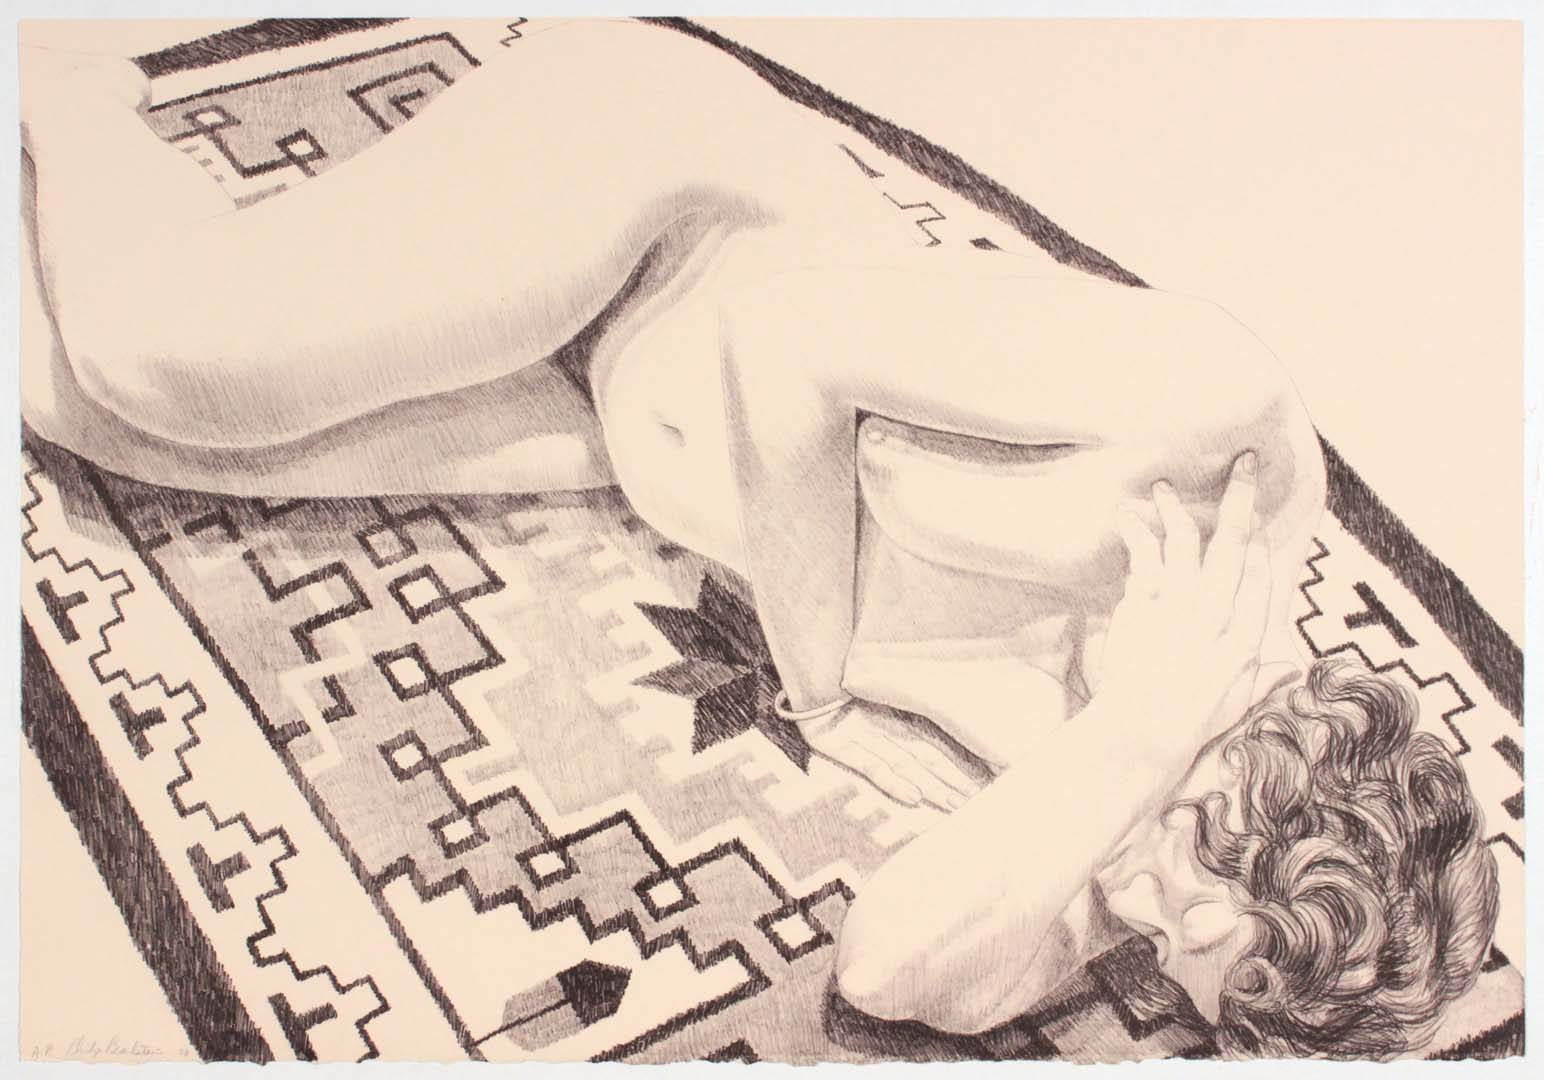 1973 Model on GreyPatterned Rug (B&W) Lithograph on Paper 22.5 x 32.5